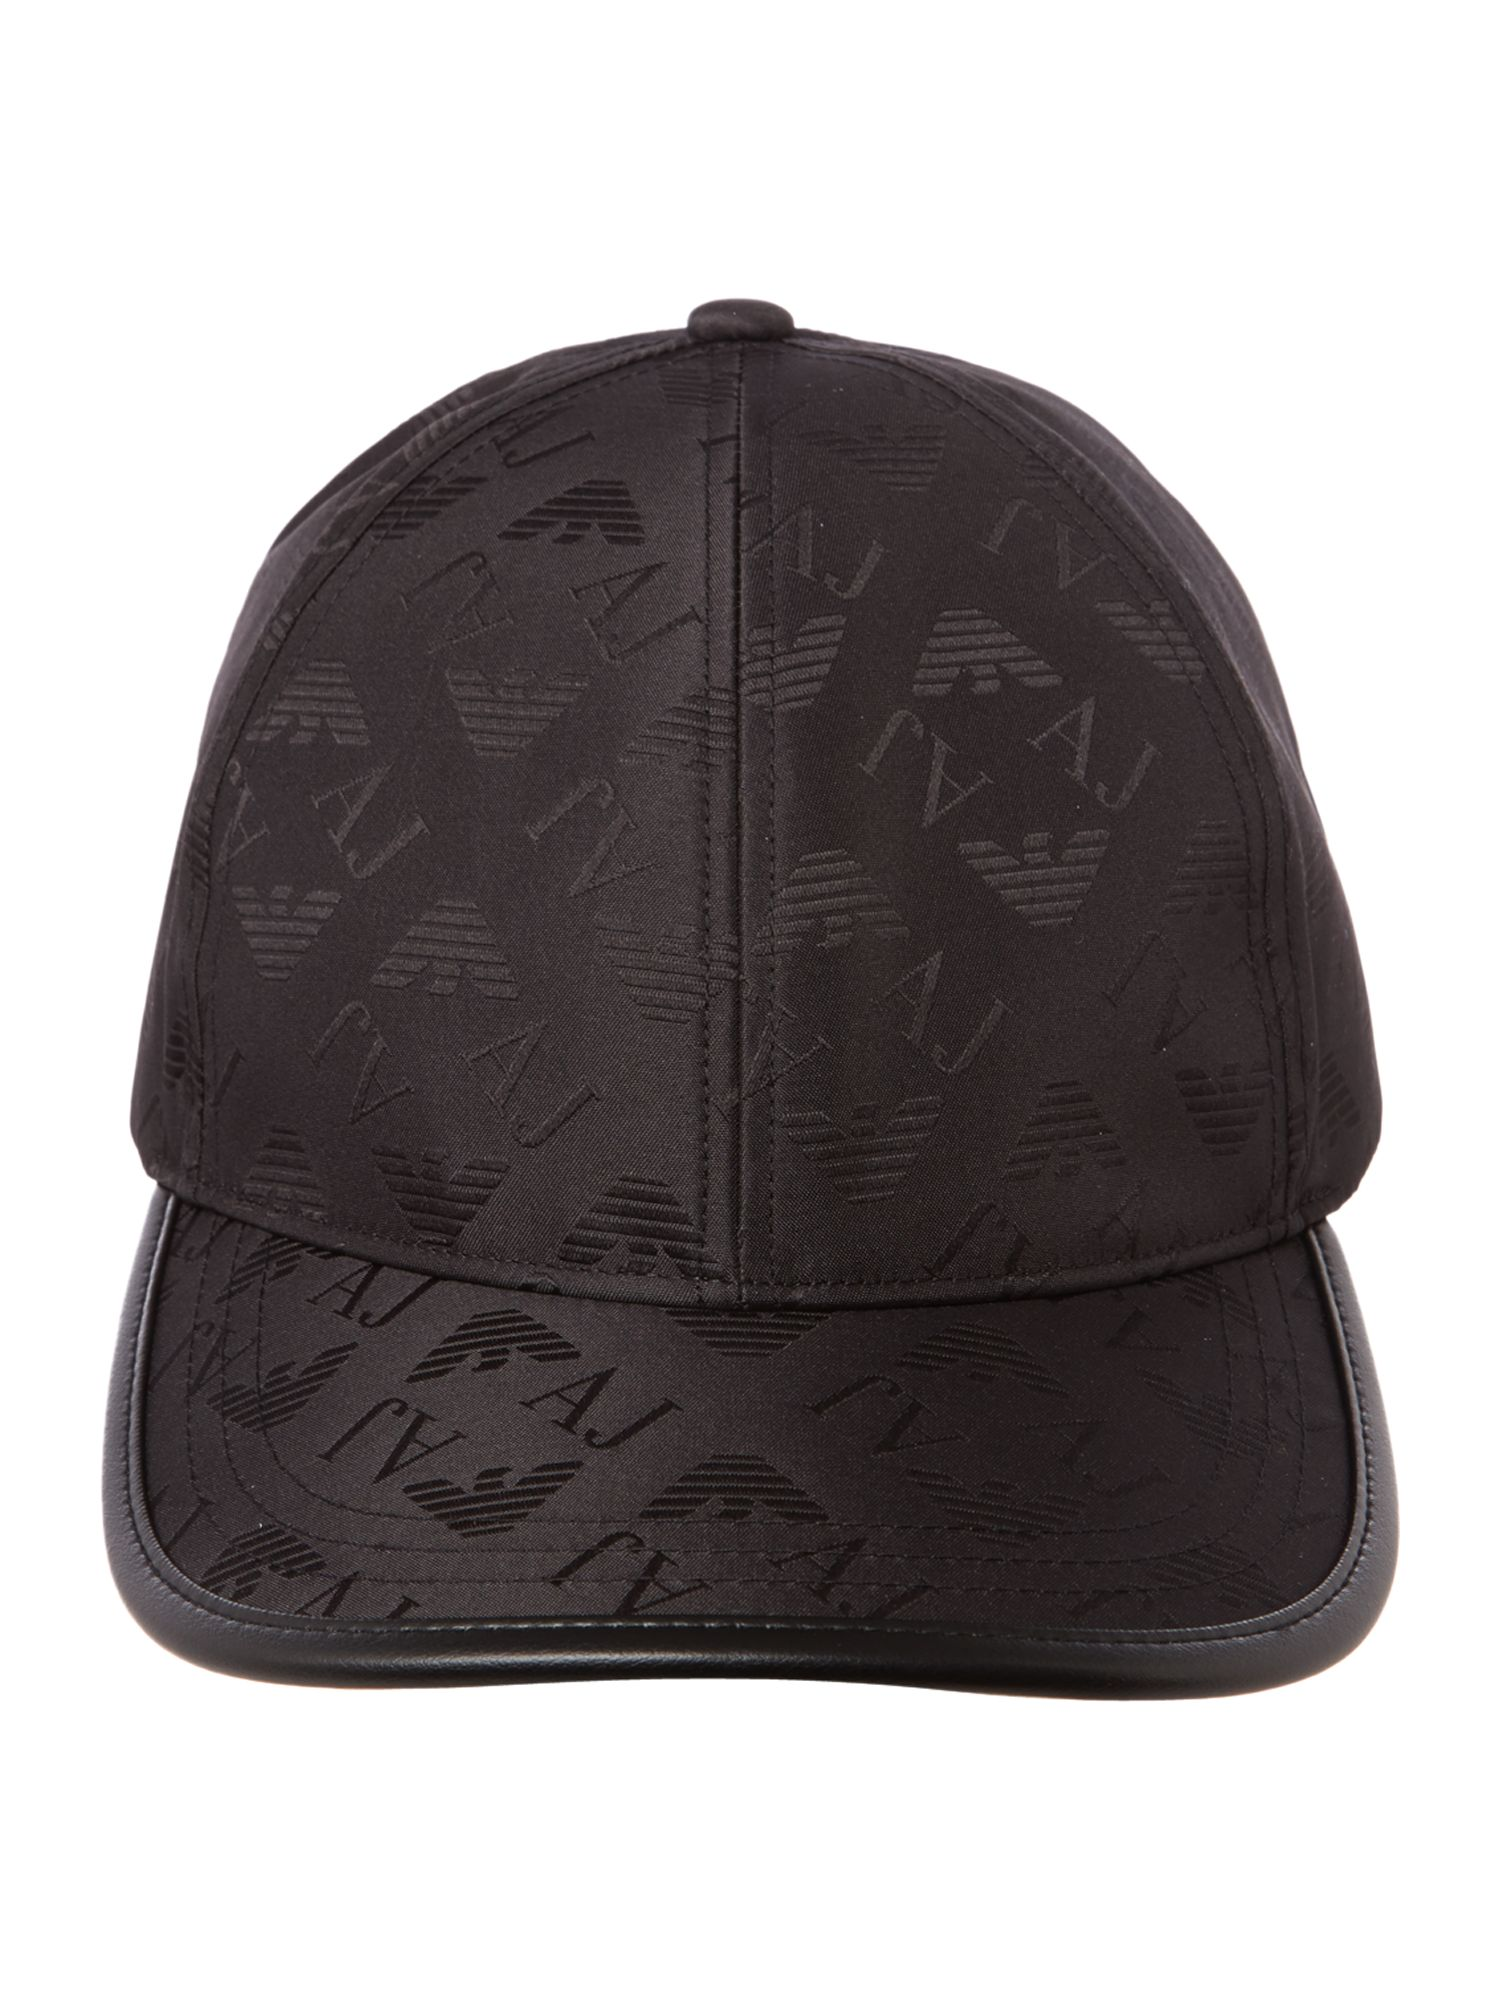 Nylon all over print cap